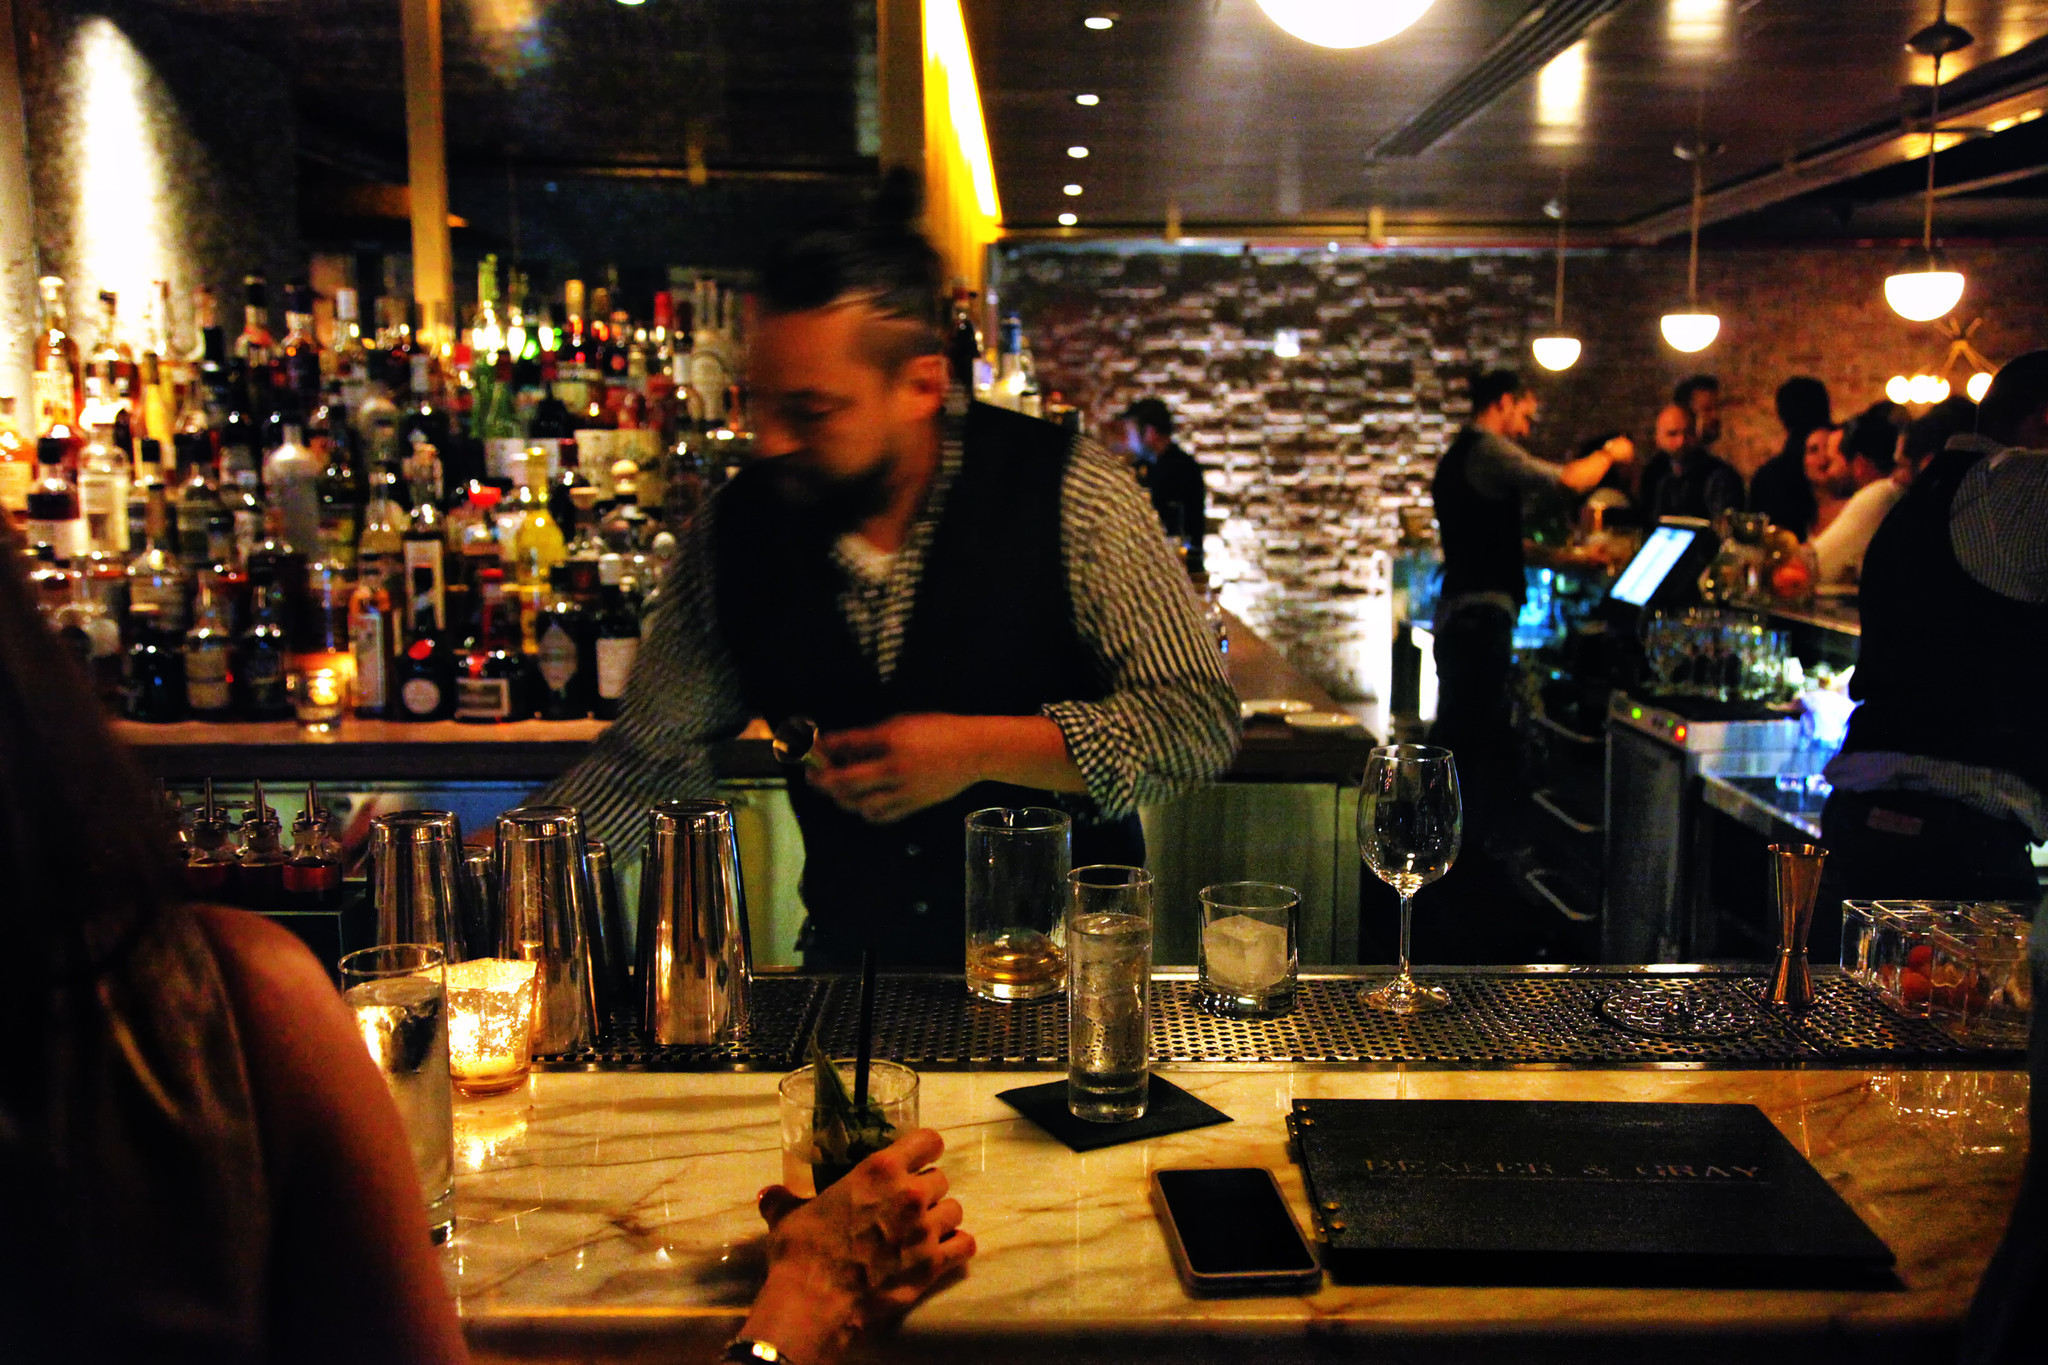 The best happy hours in Miami, Lauderdale, Boca, Delray, West Palm Beach and other South Florida citites.